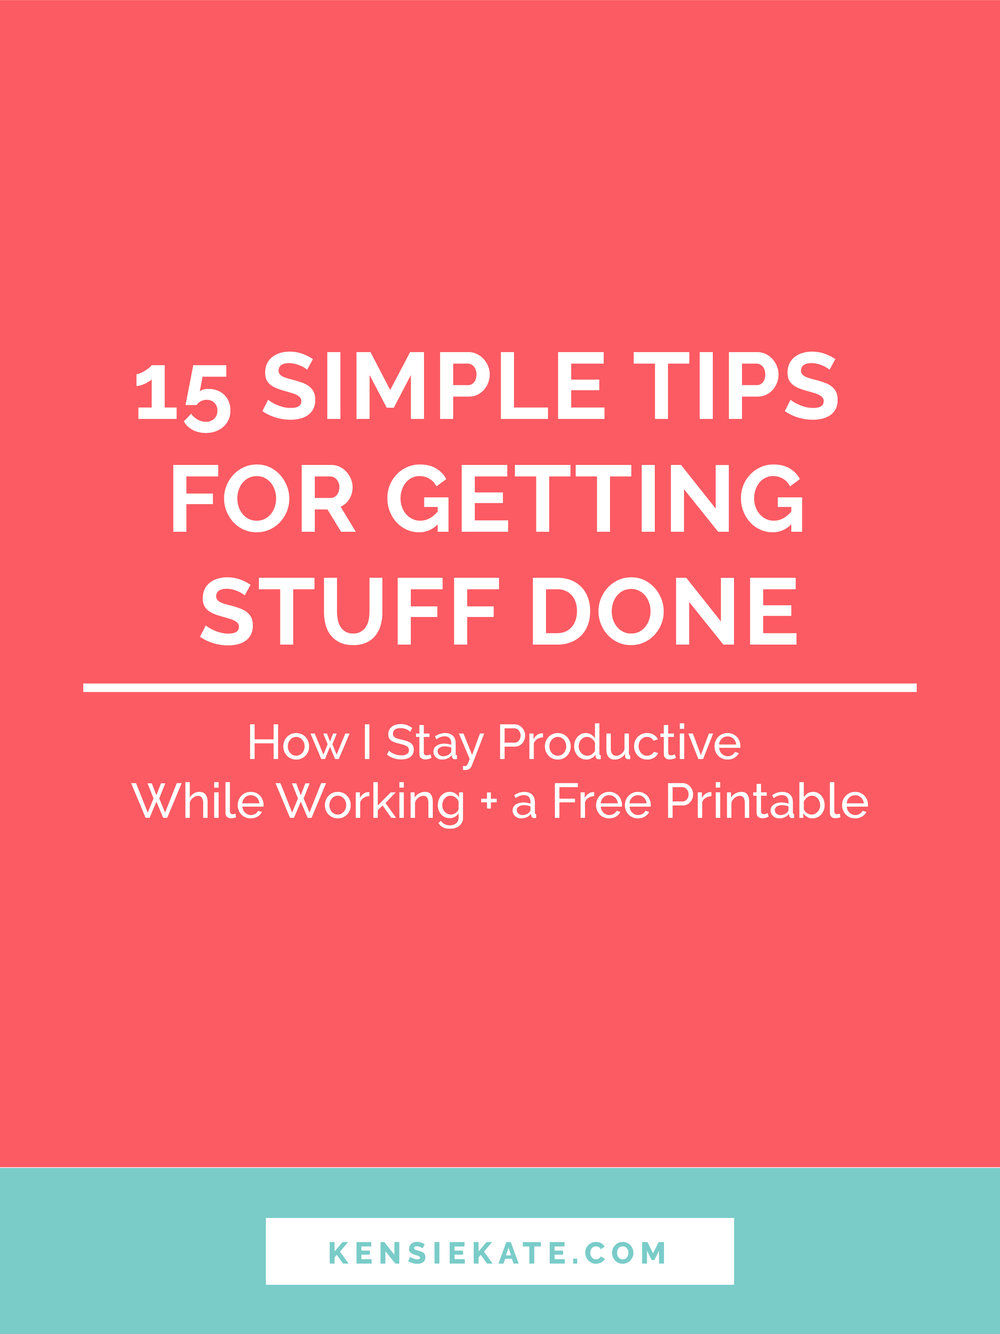 Kensie_Kate_15_Simple_Tips_For_Getting_Stuff_Done